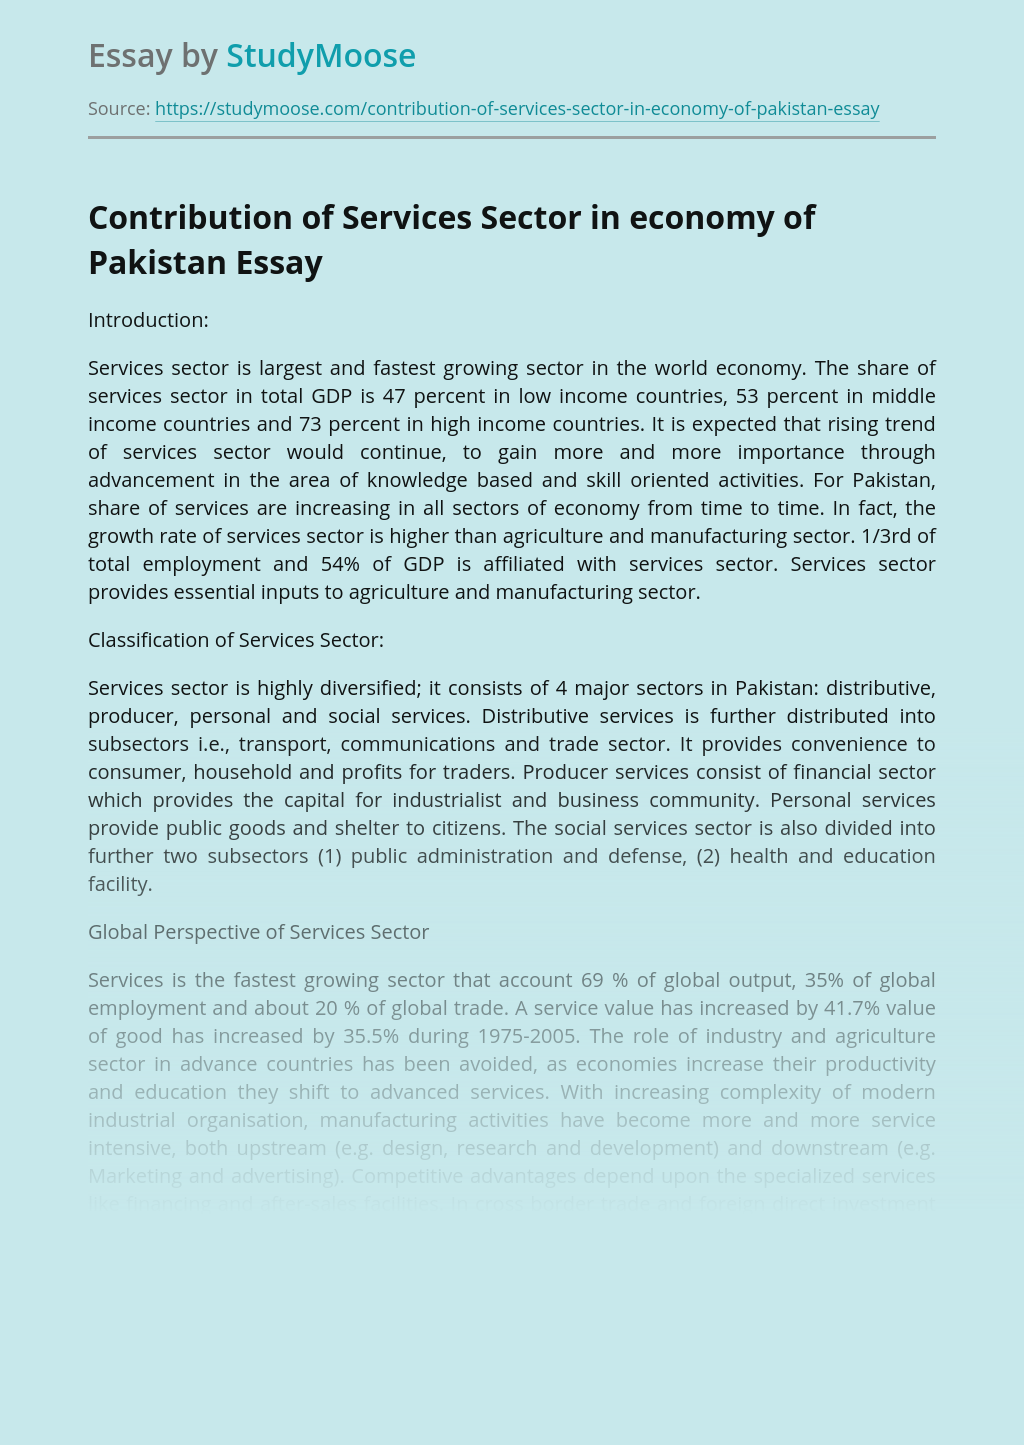 Contribution of Services Sector in economy of Pakistan